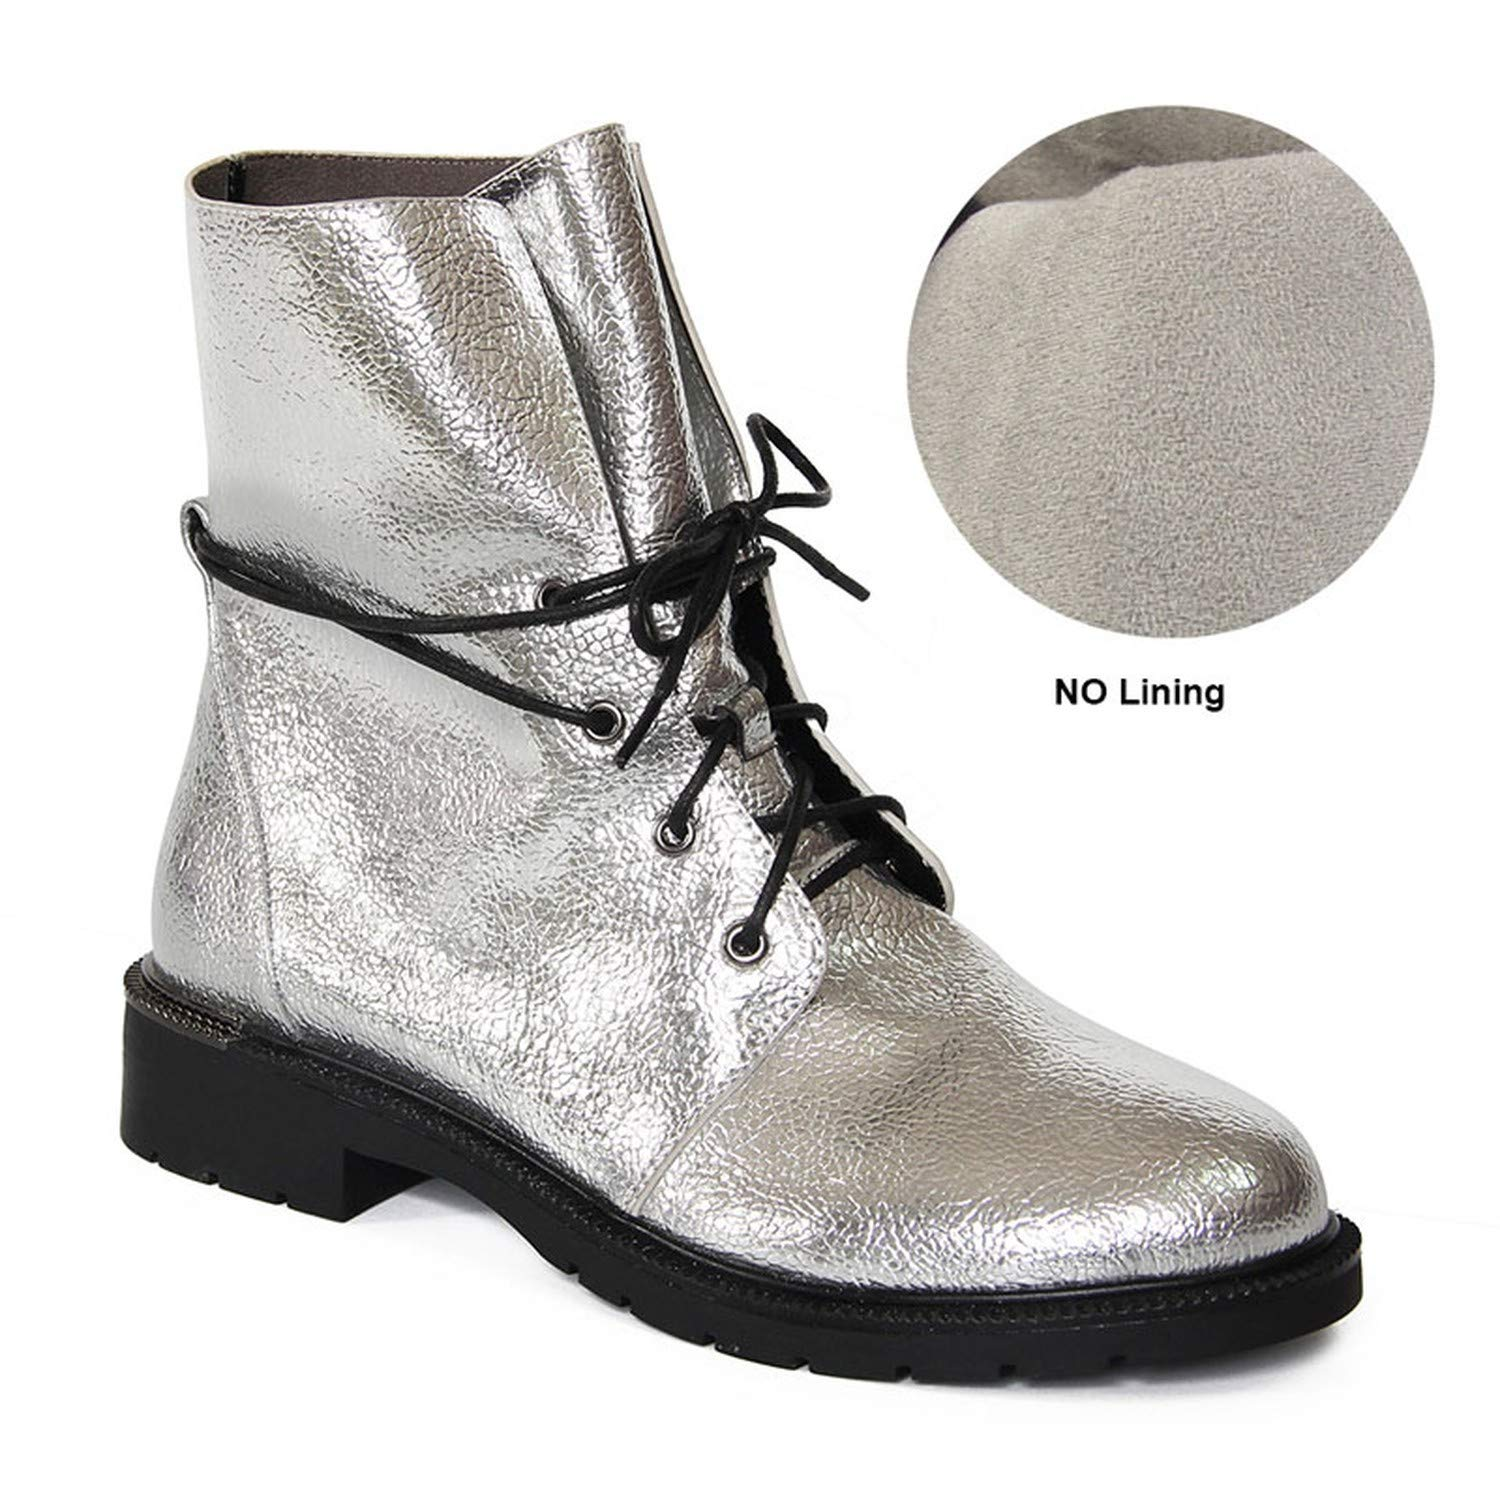 This is not a harm. Retro Winter Autumn Silver PU Leather Short Ankle Boots Women Handmade Casual Lady Shoes,H185-K1165-autumn,8.5,Russian Federation